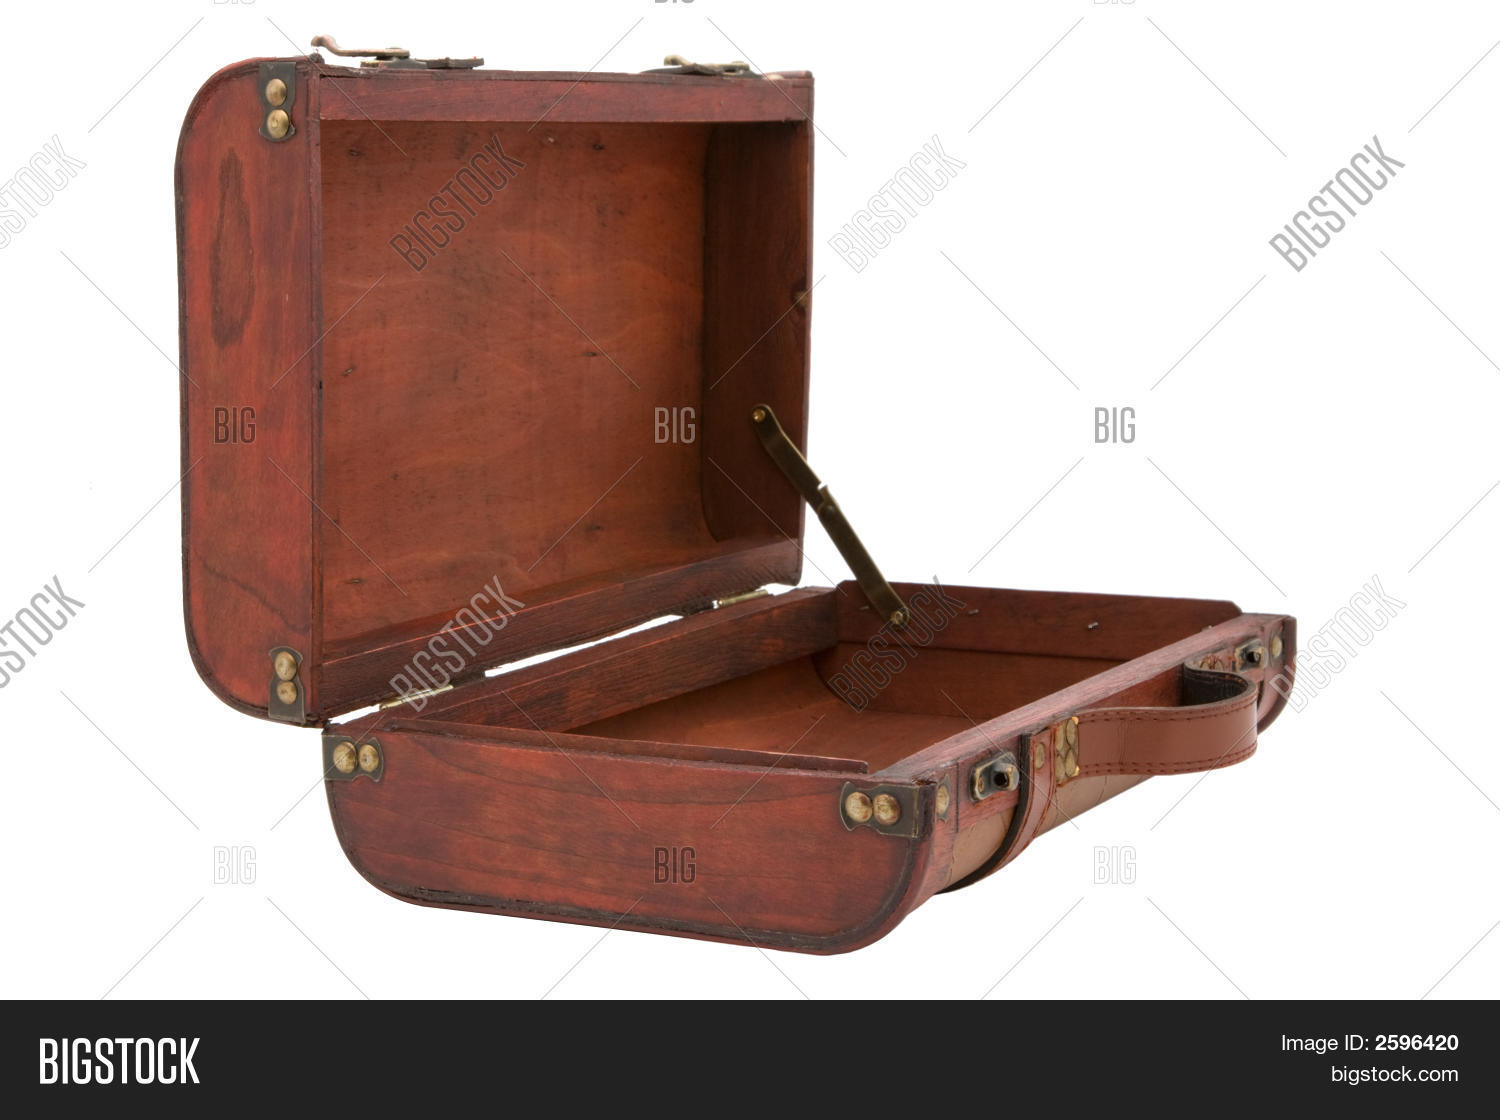 Vintage Wooden Suitcase Open On White Background Stock Photo ...